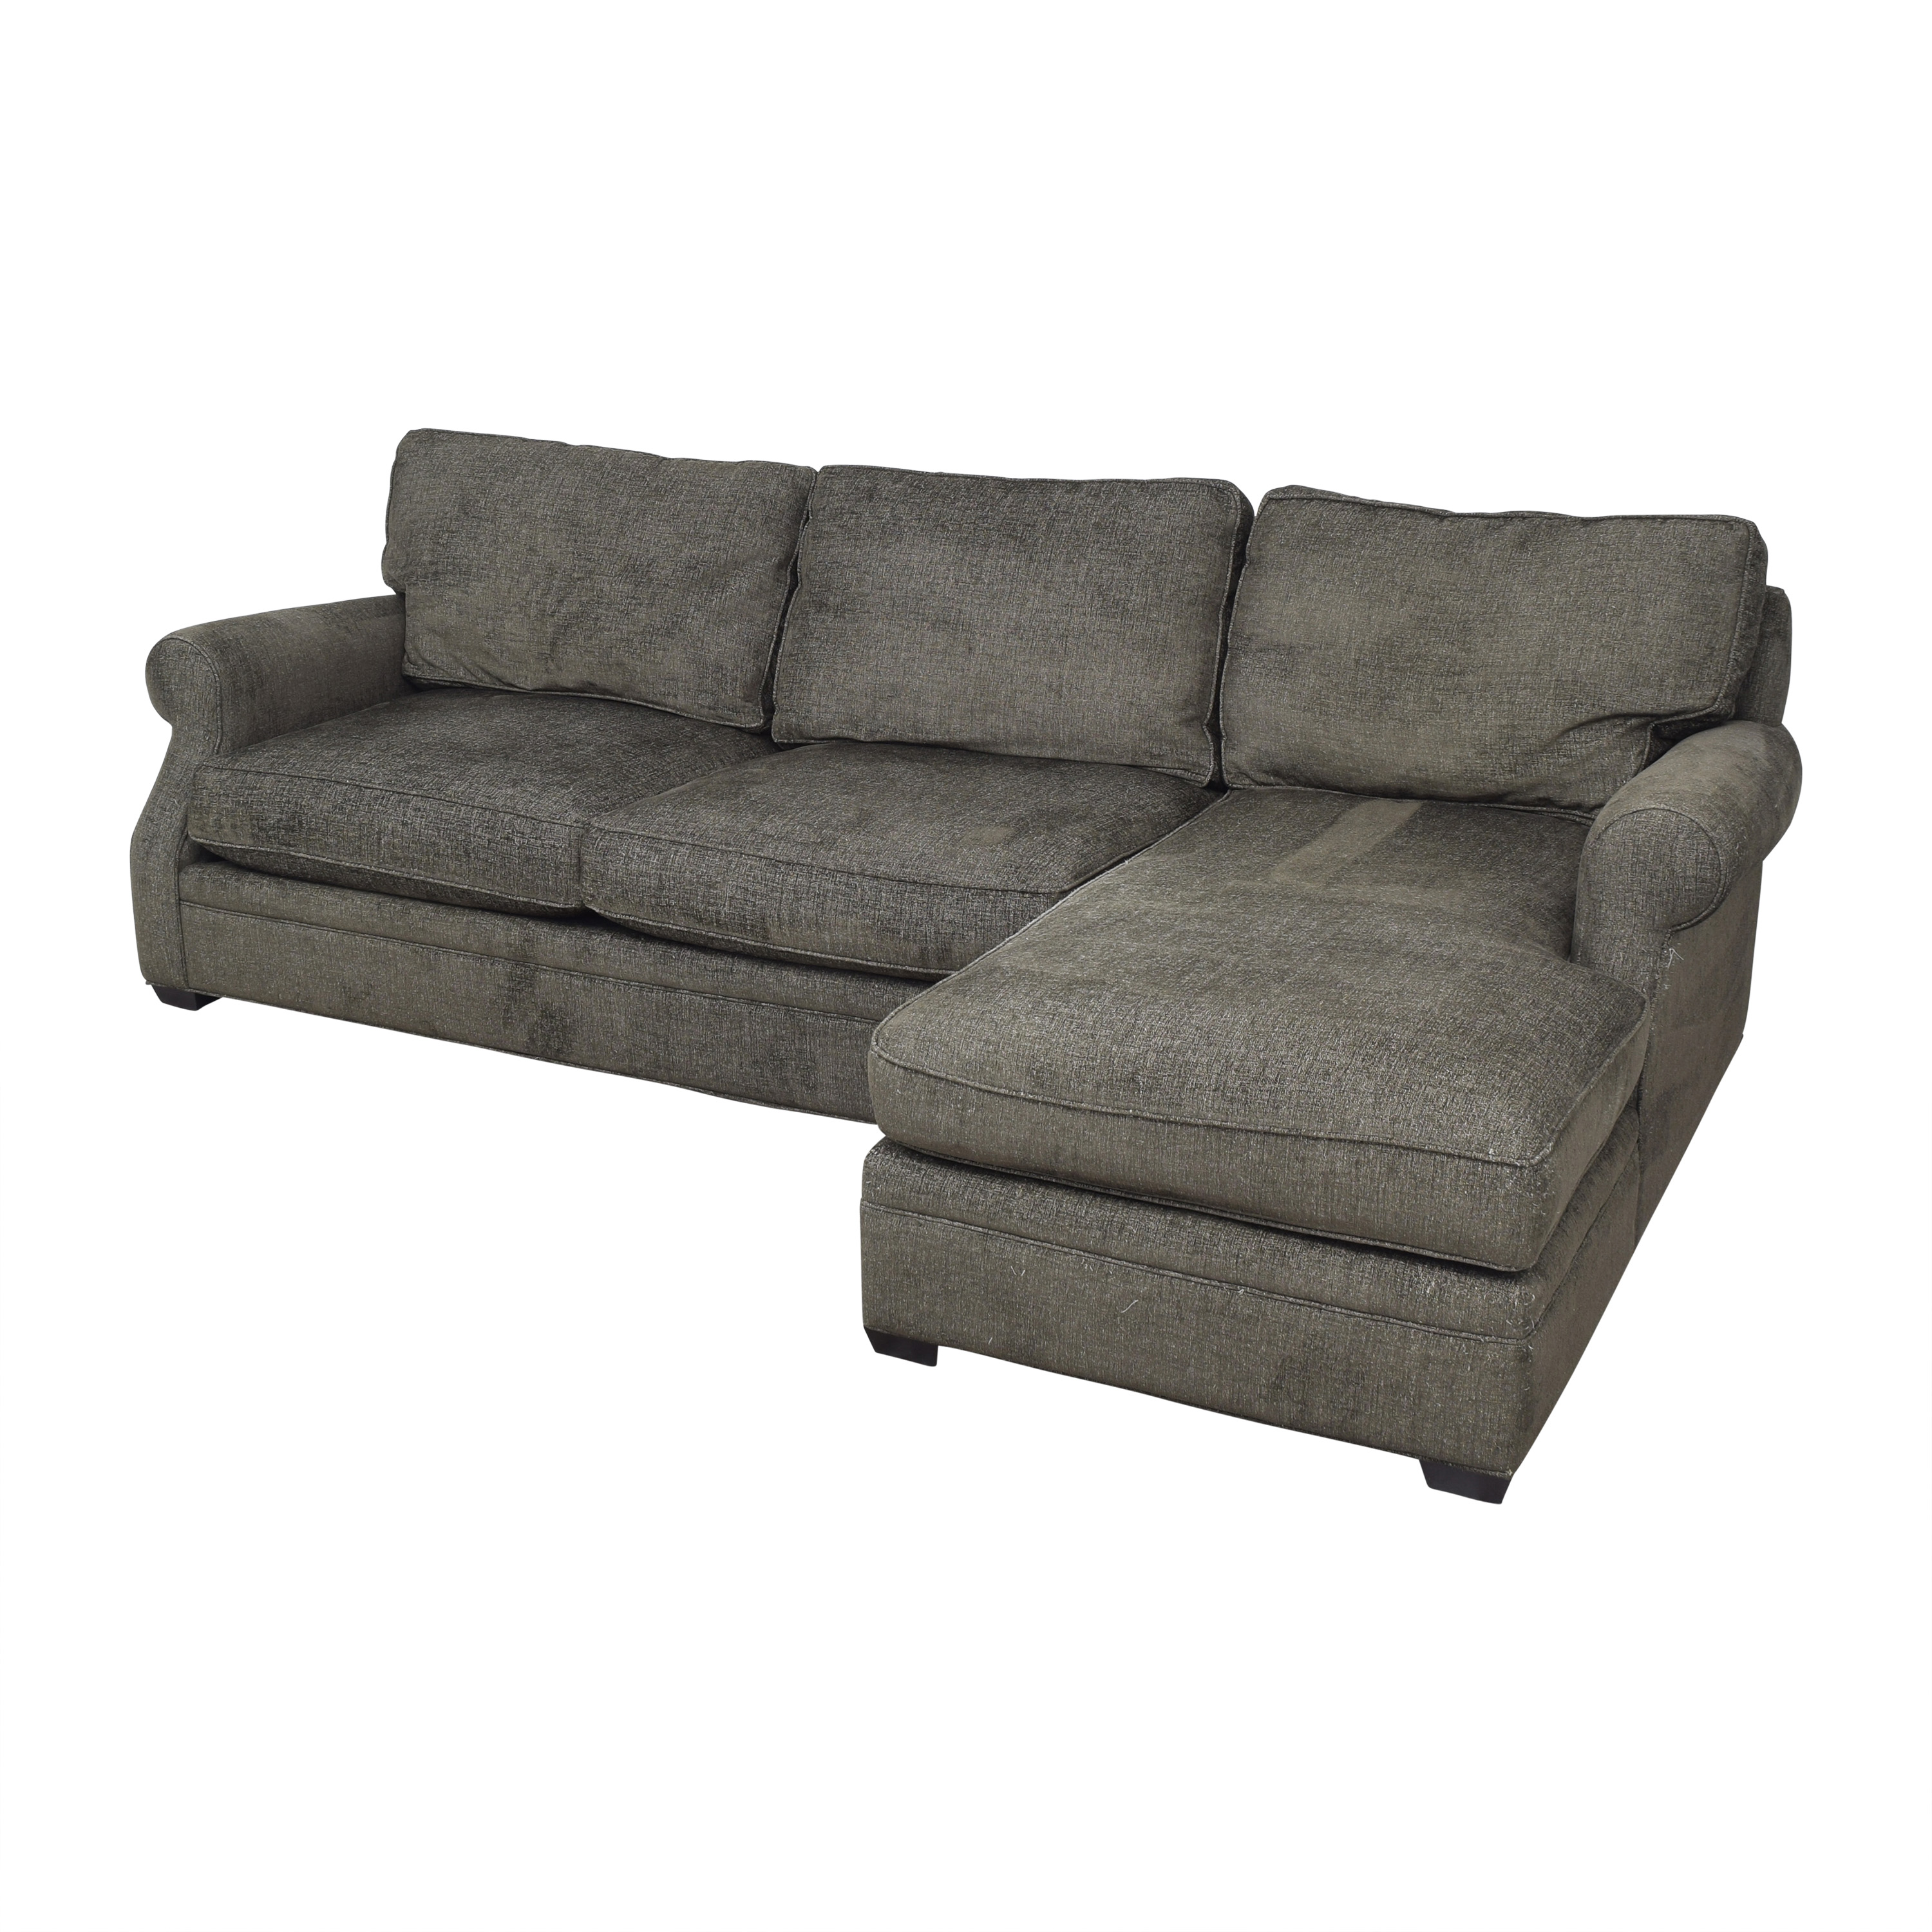 Arhaus Arhaus Landsbury Chaise Sectional Sofa and Ottoman dimensions